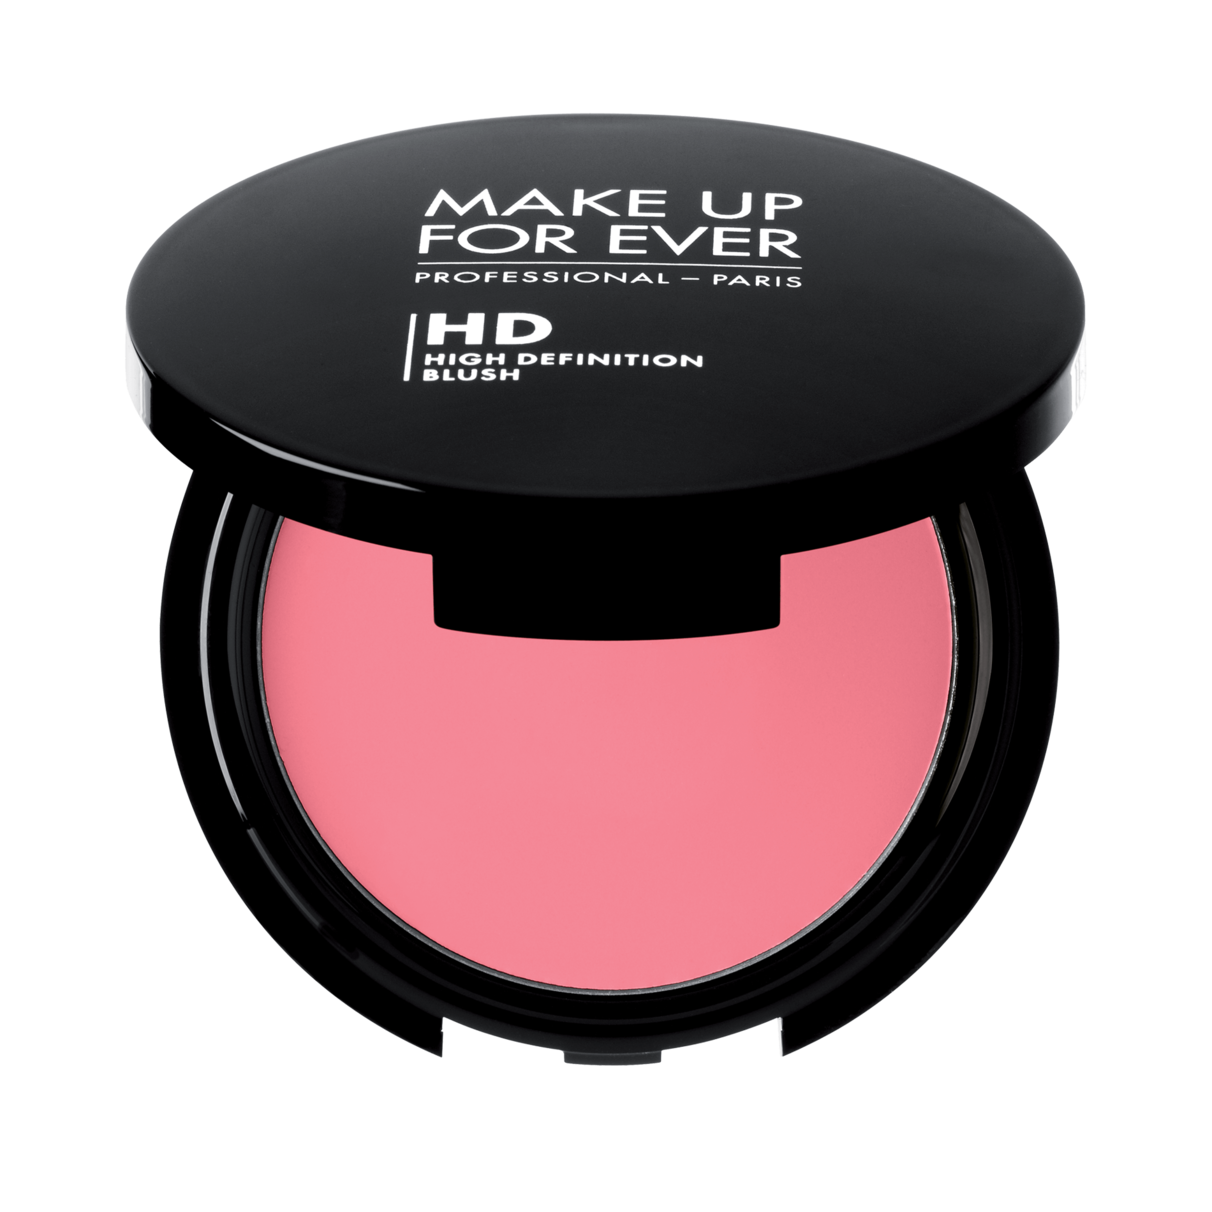 MAKE UP FOR EVER HD Blush Second Skin Cream Blush